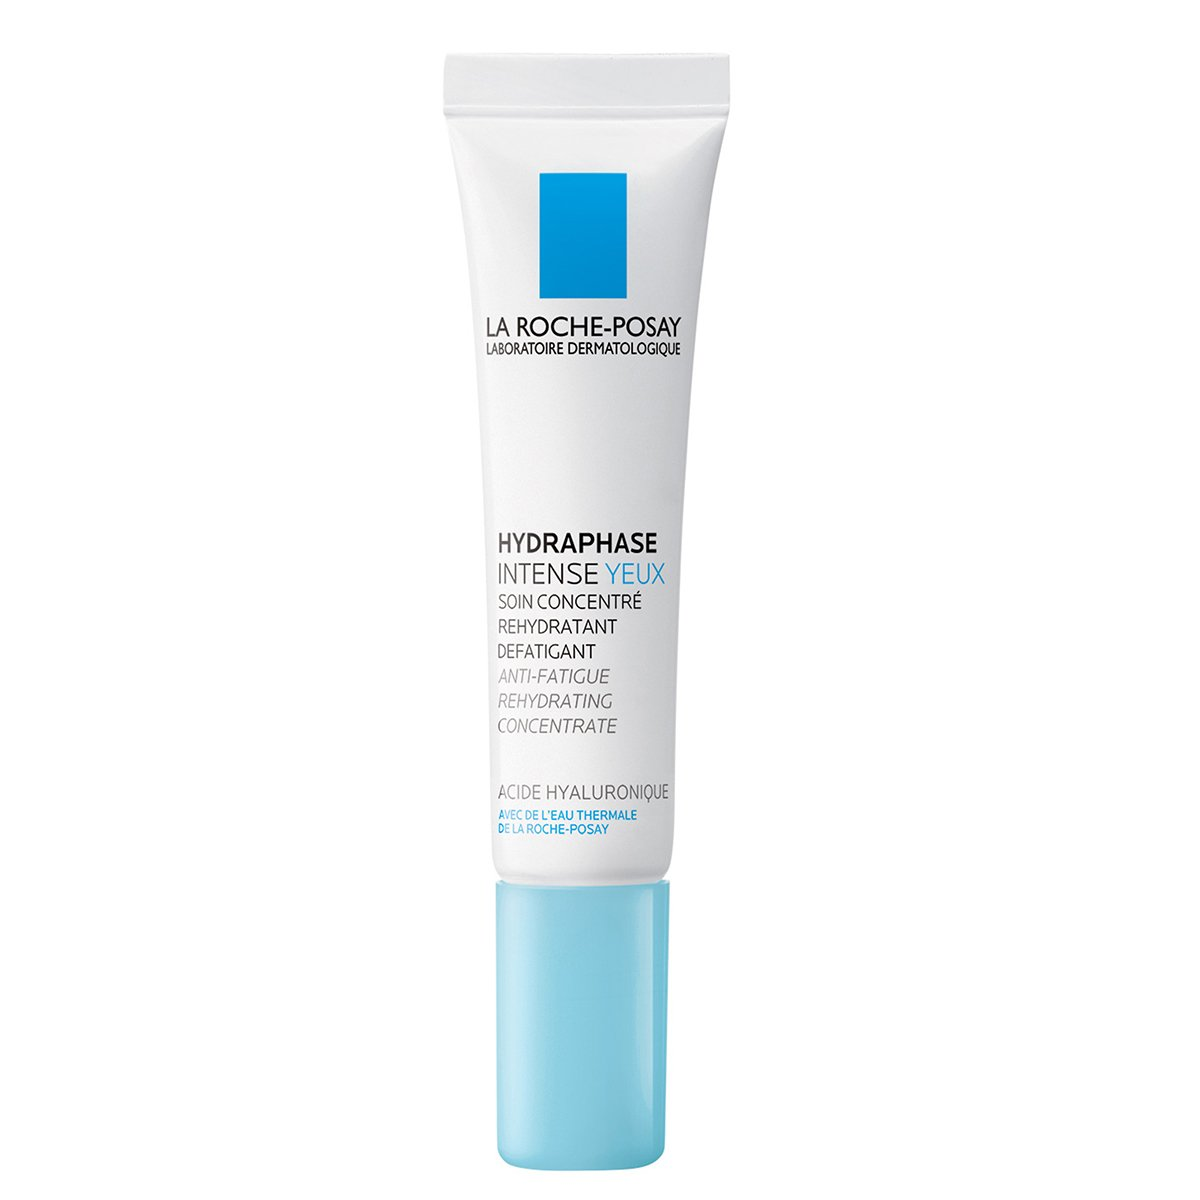 La Roche-Posay Hydraphase Intense Eye Cream with Hyaluronic Acid to Reduce Under-Eye Bags and Puffiness, 0.5 Fl. Oz.